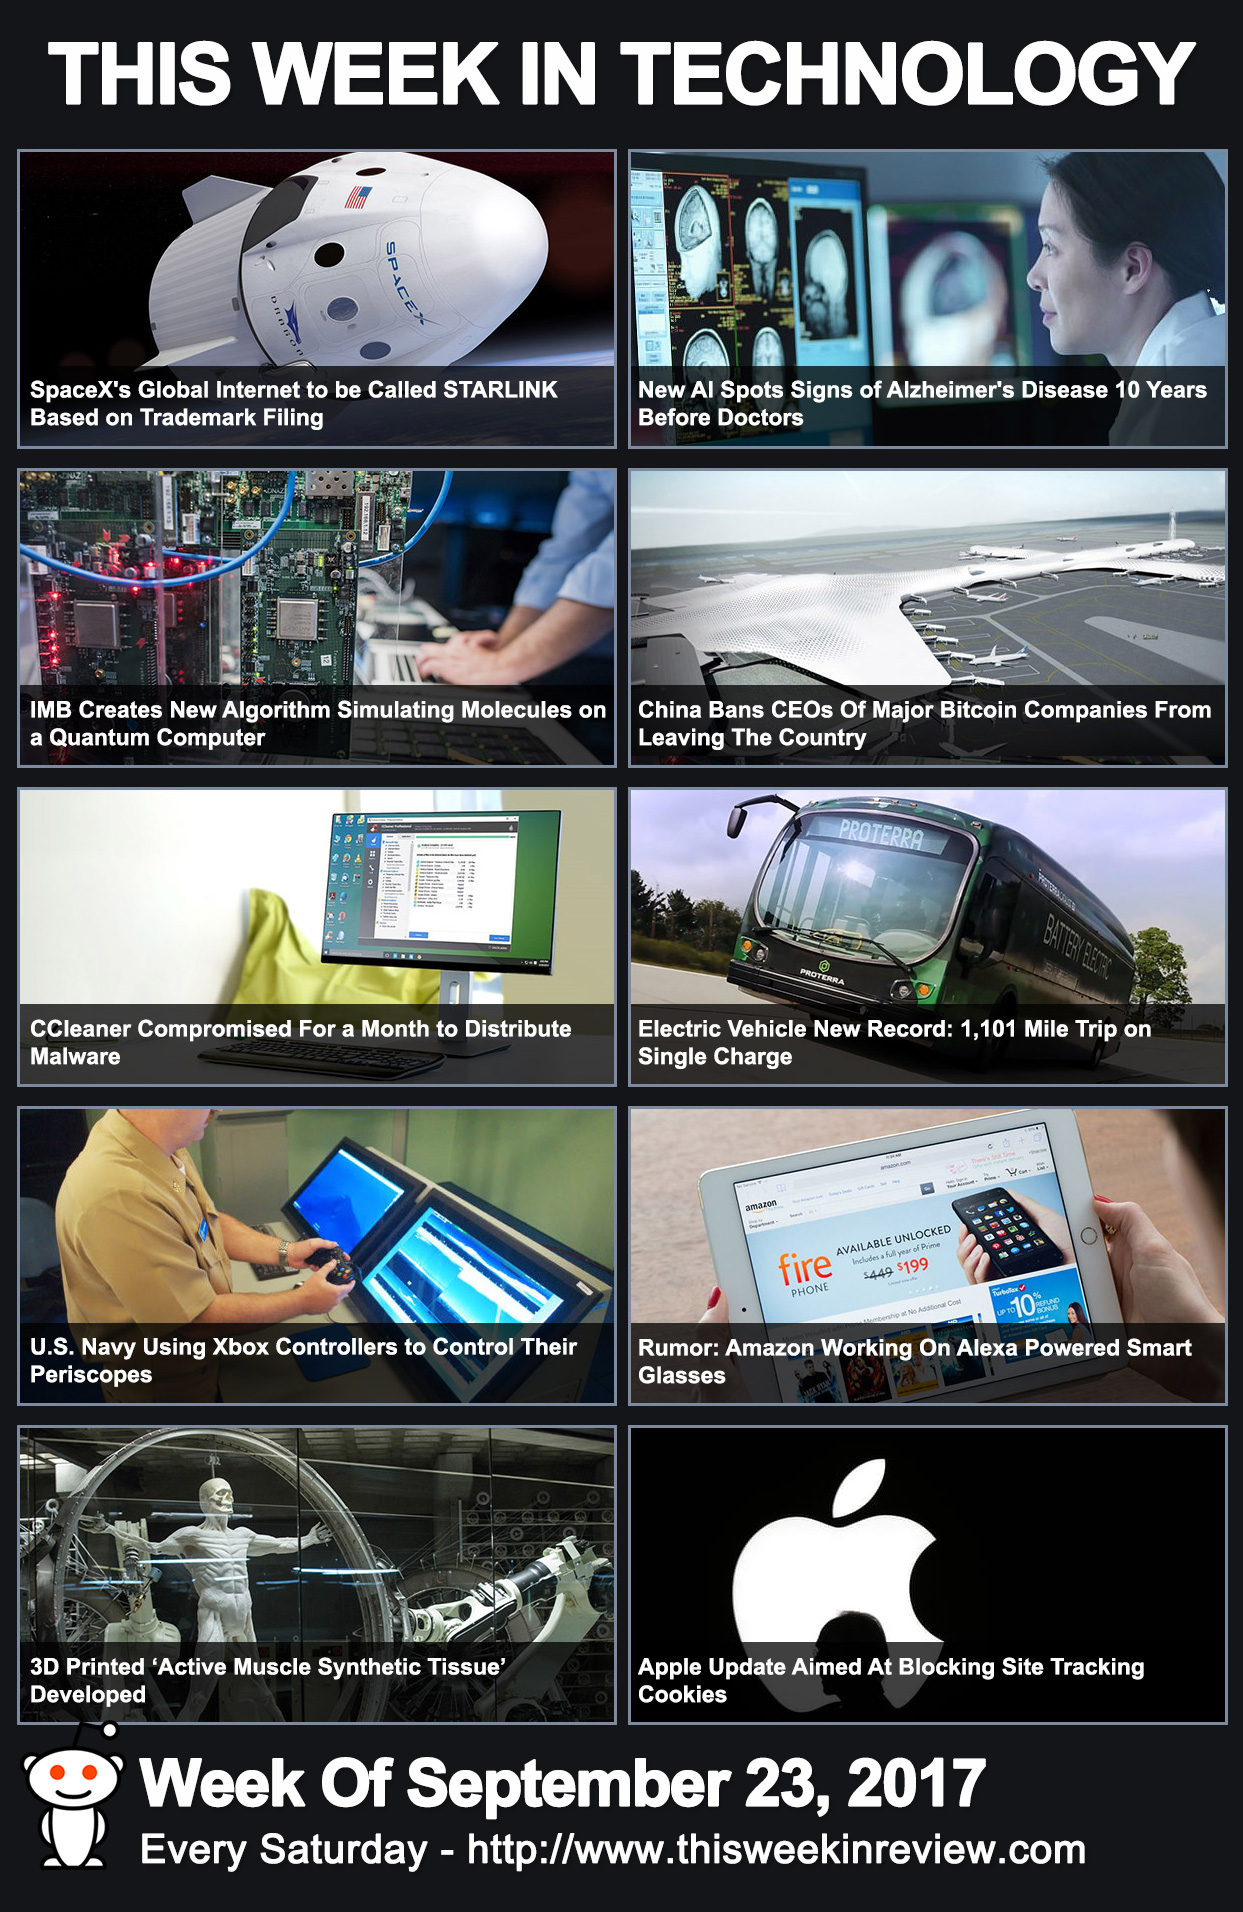 This Week In Technology - September 23, 2017